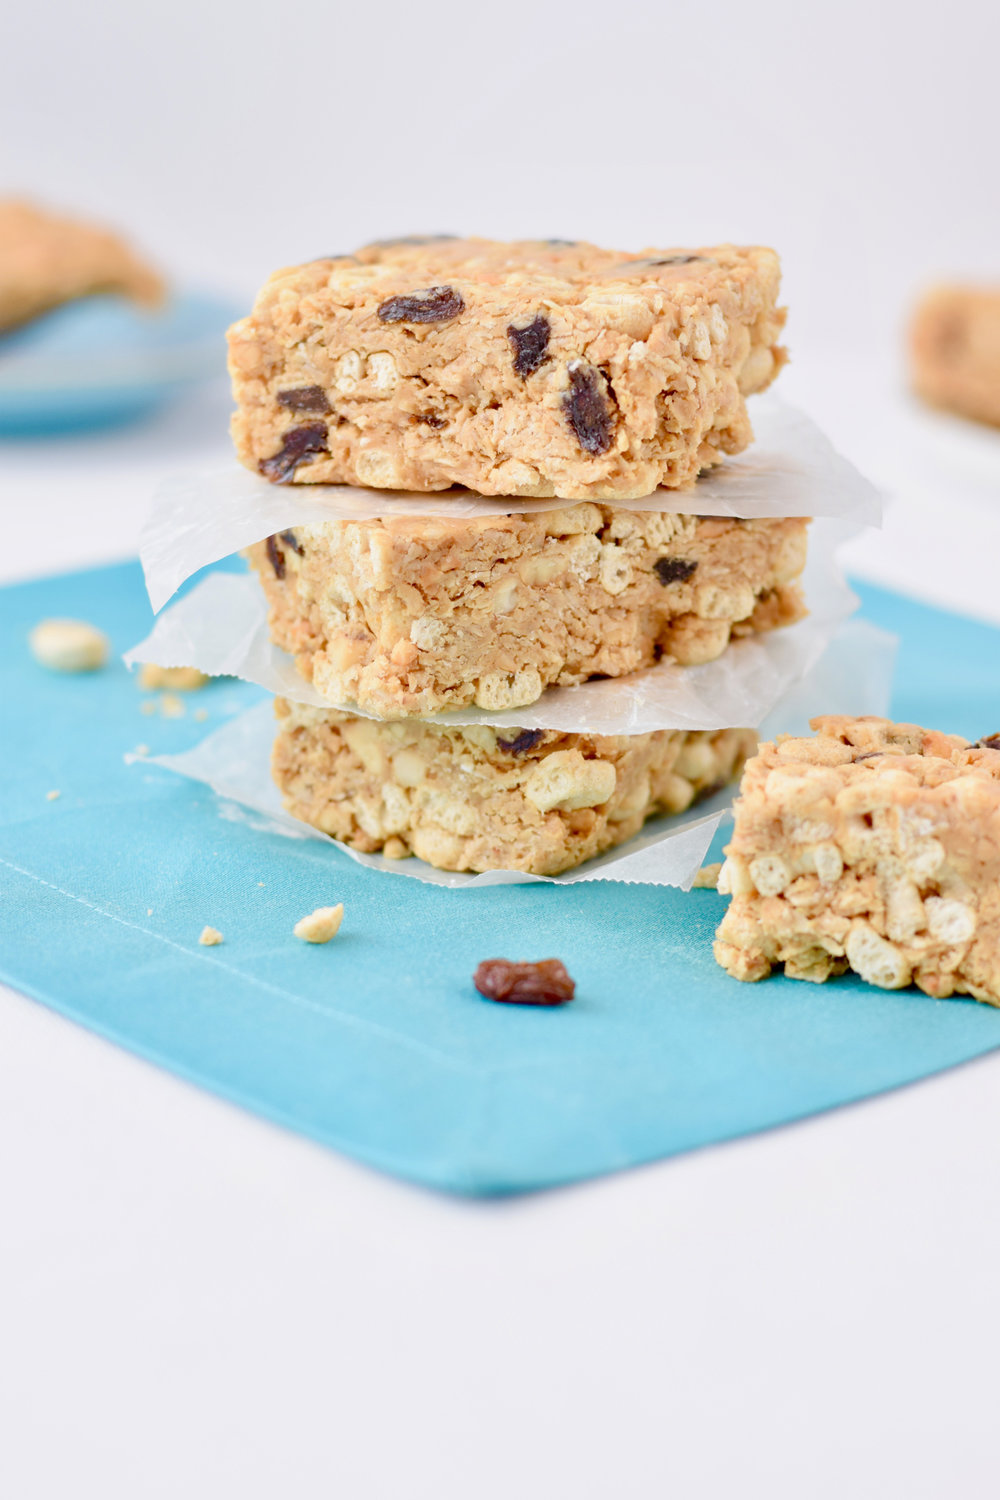 No Bake Peanut Butter Cereal Bars - Elizabeth Ward, MS, RD of Better is The New Perfect